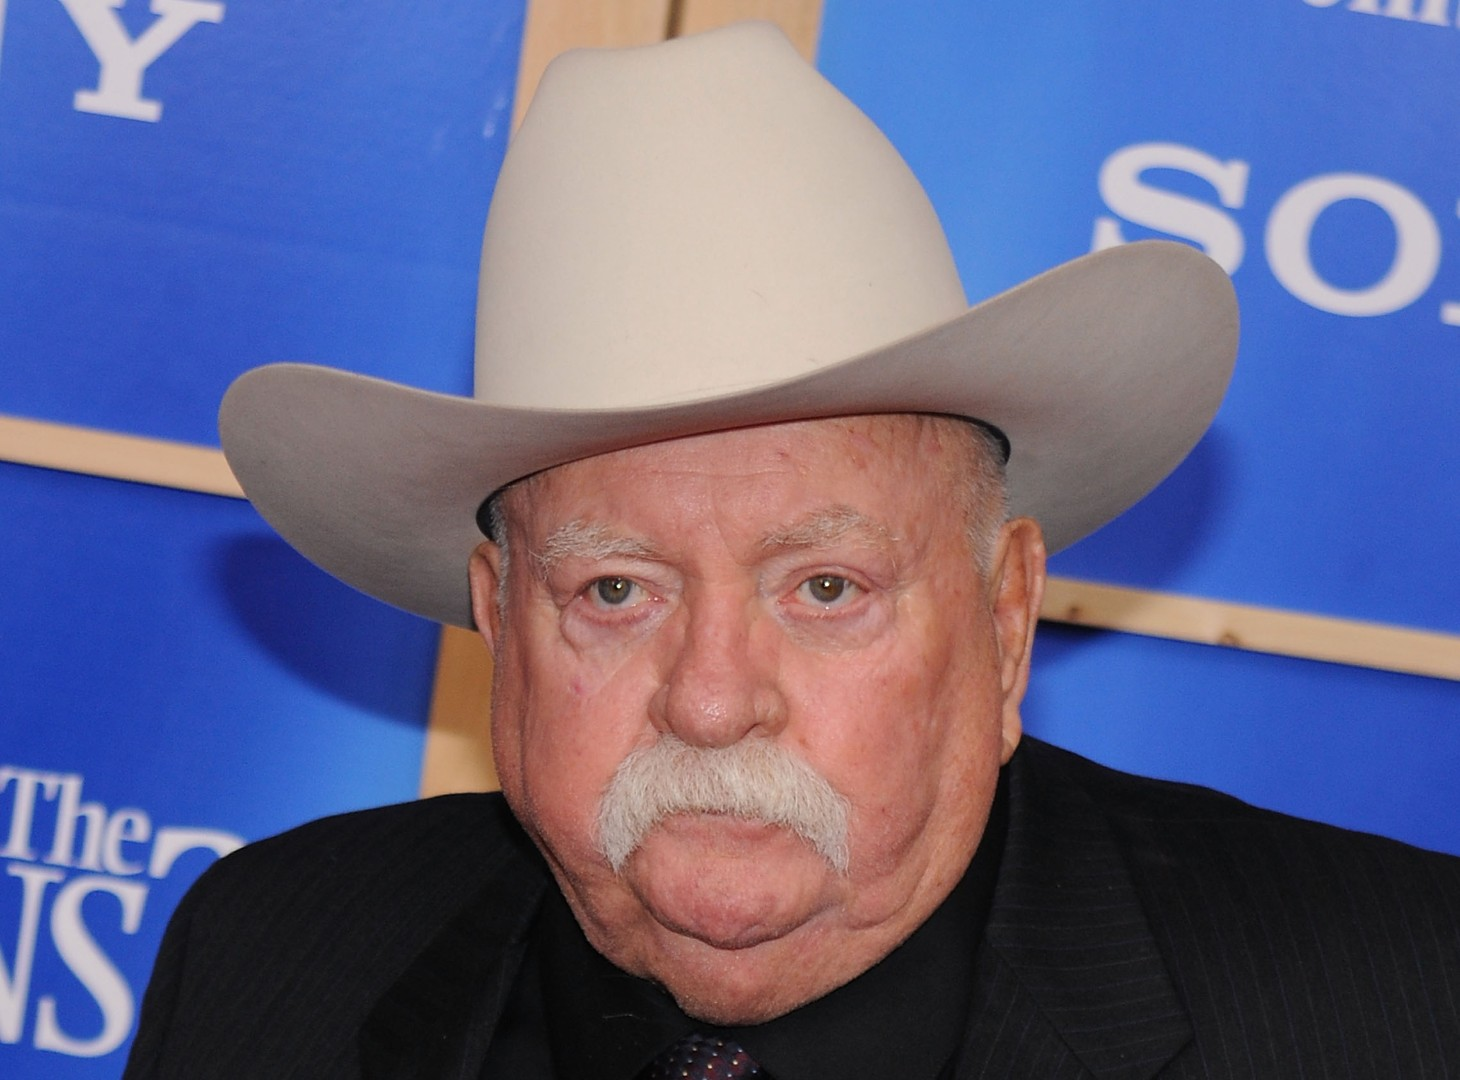 Wilford Brimley appears in an undated photo. (Getty Images)